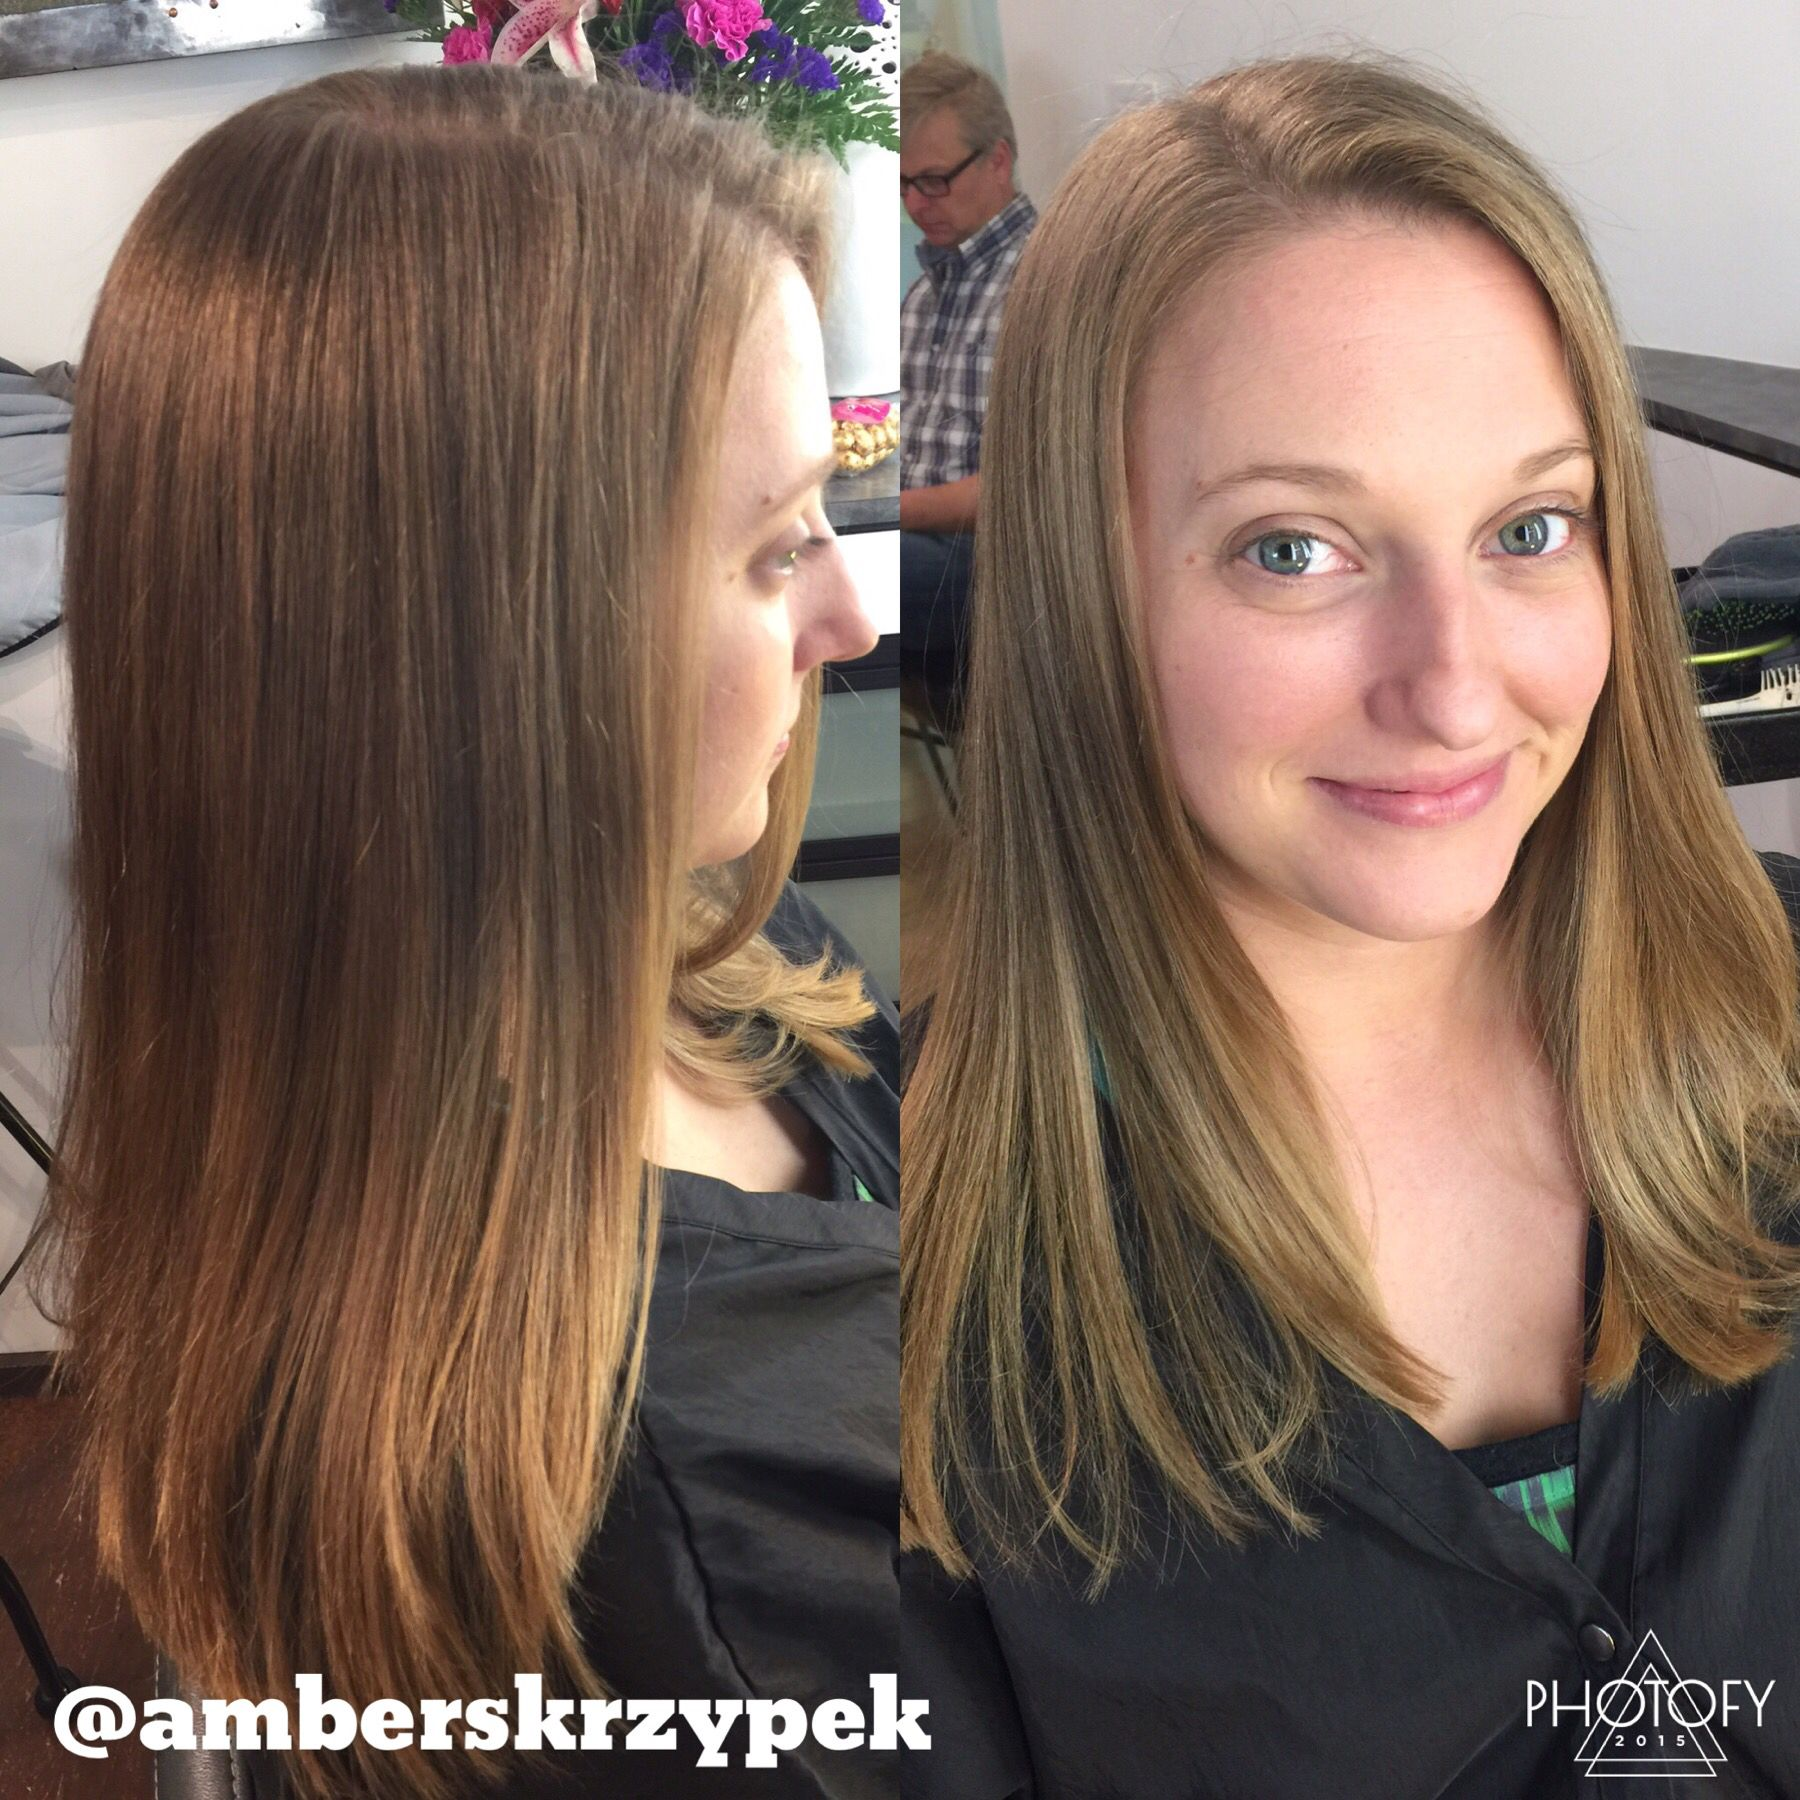 In Love With This Buttery Blonde Created With Keune Hair Color No Bleach On Virgin Hair Used A Balayage Method Buttery Blonde Hair Styles Long Hair Styles